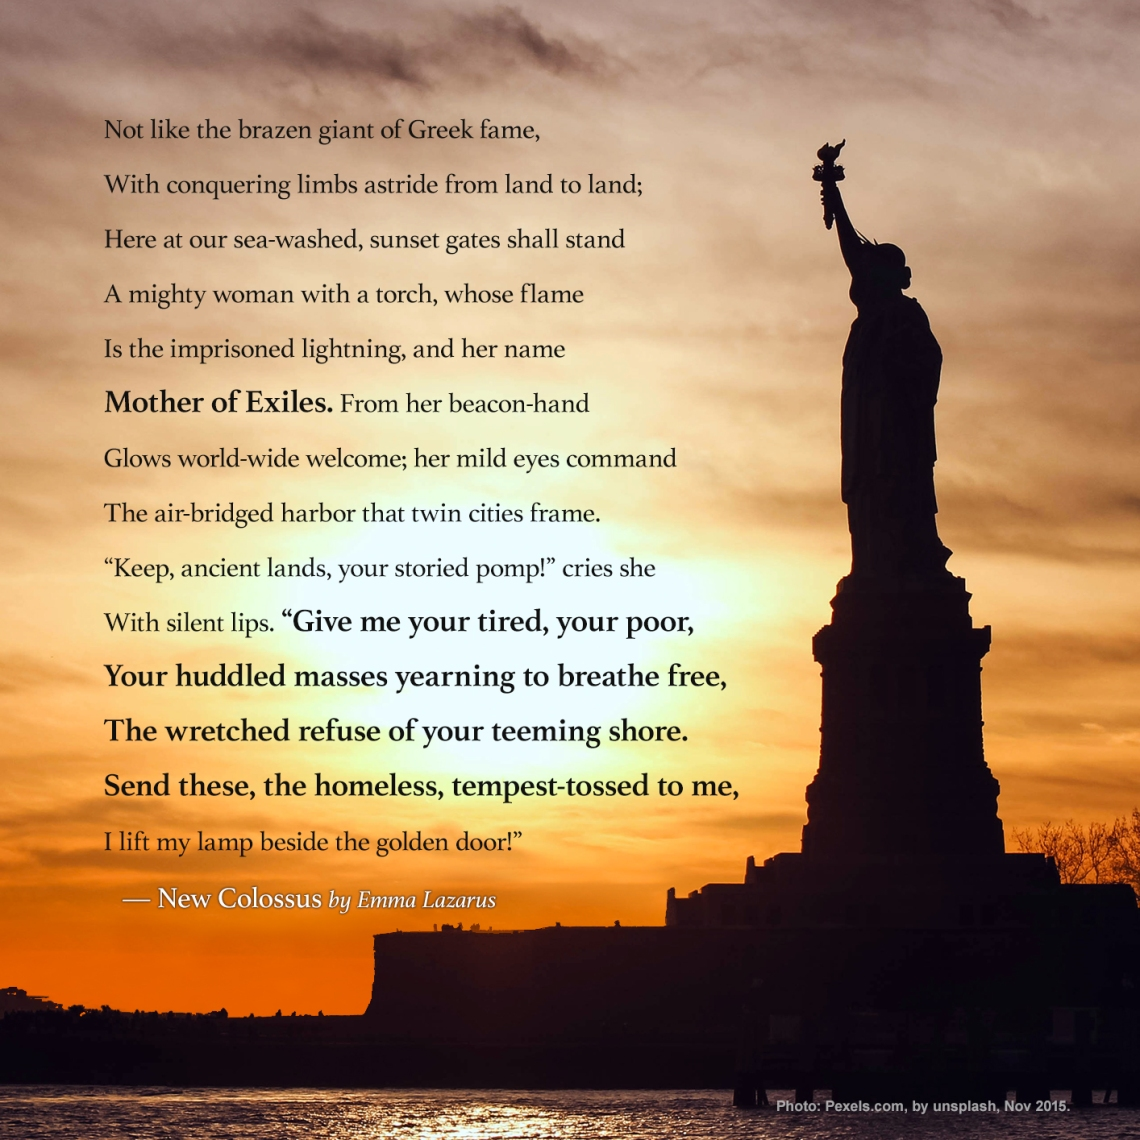 New Colossus, from the Statue of Liberty